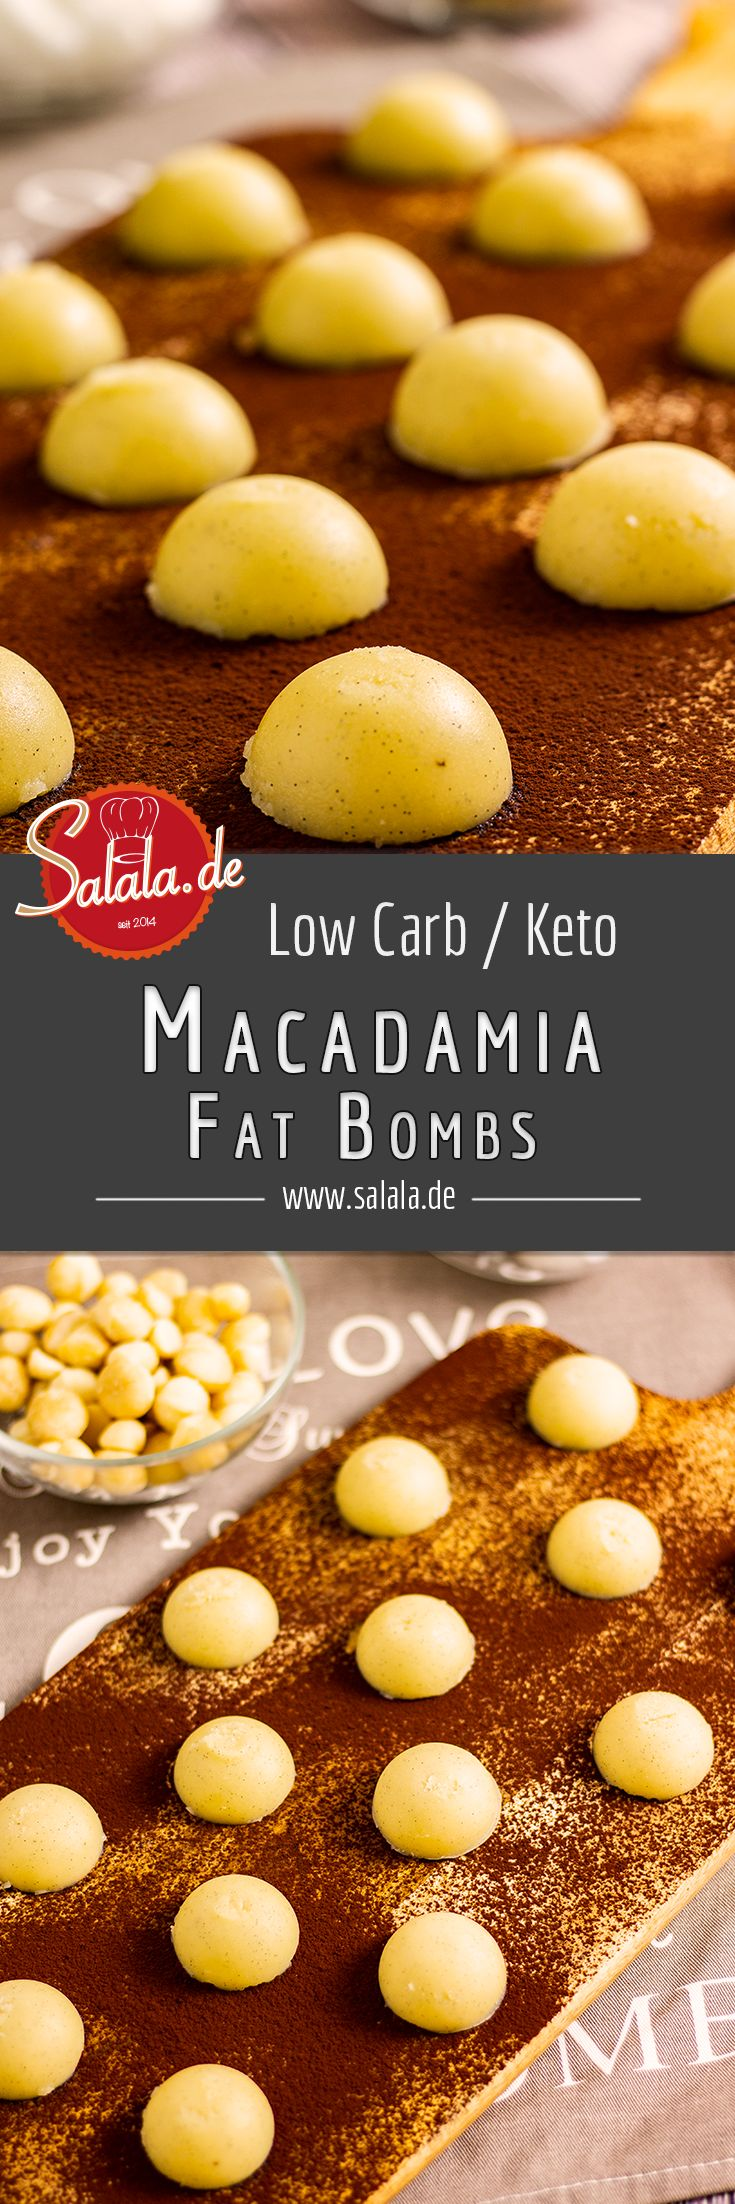 vanille macadamia fat bombs rezept low carb. Black Bedroom Furniture Sets. Home Design Ideas